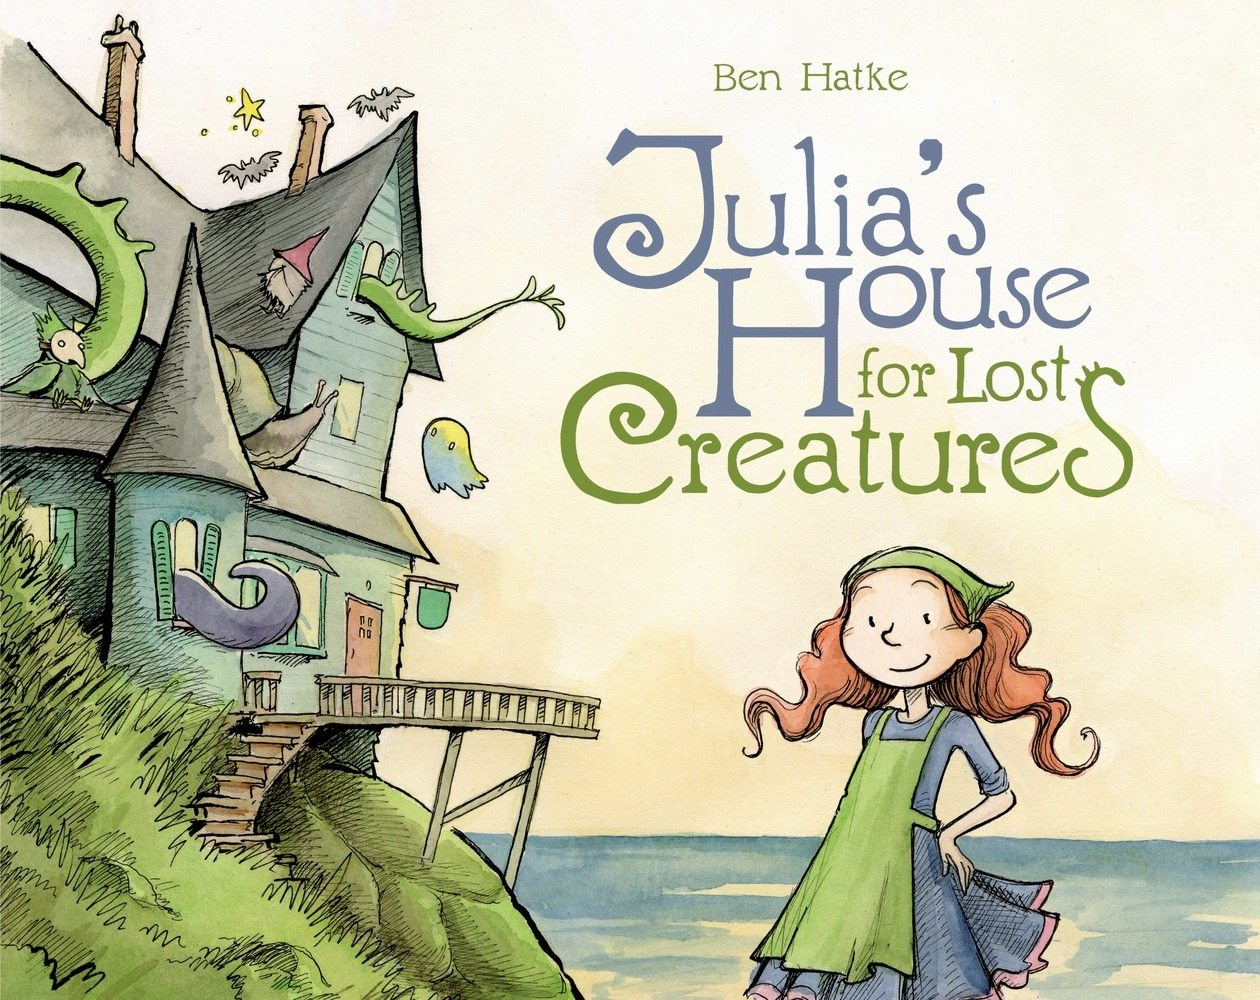 Julia's House for Lost Creatures. Image credit: First Second